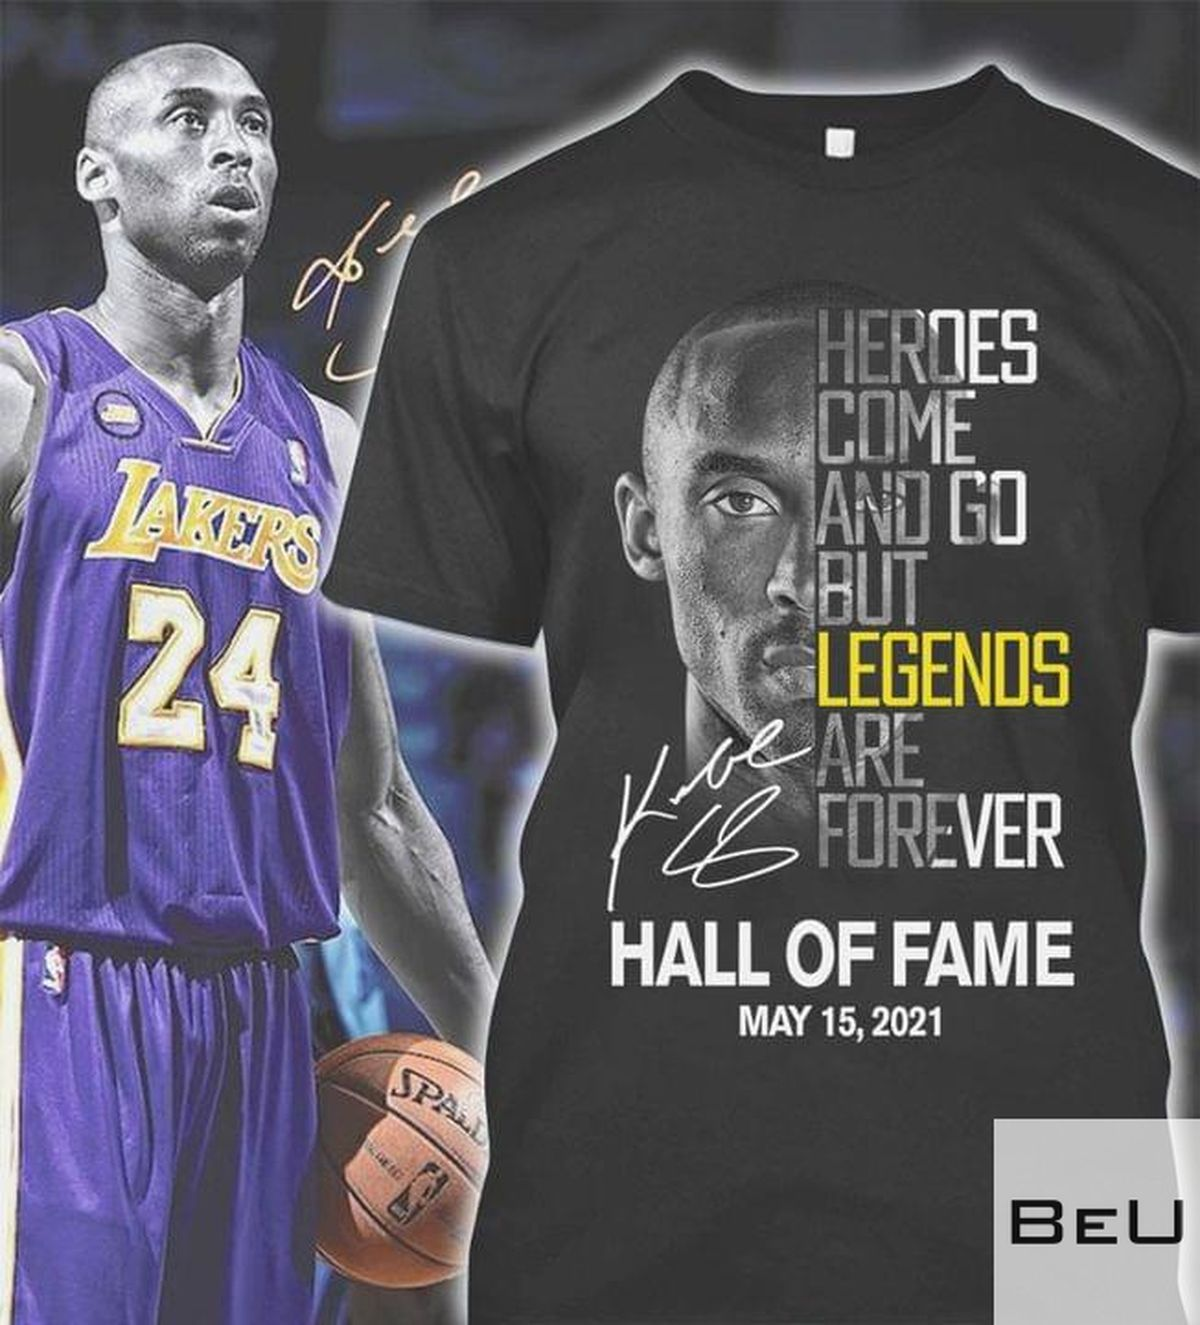 Heroes Come And Go But Legends Are Forever Hall Of Fame May 15, 2021 Shirt v